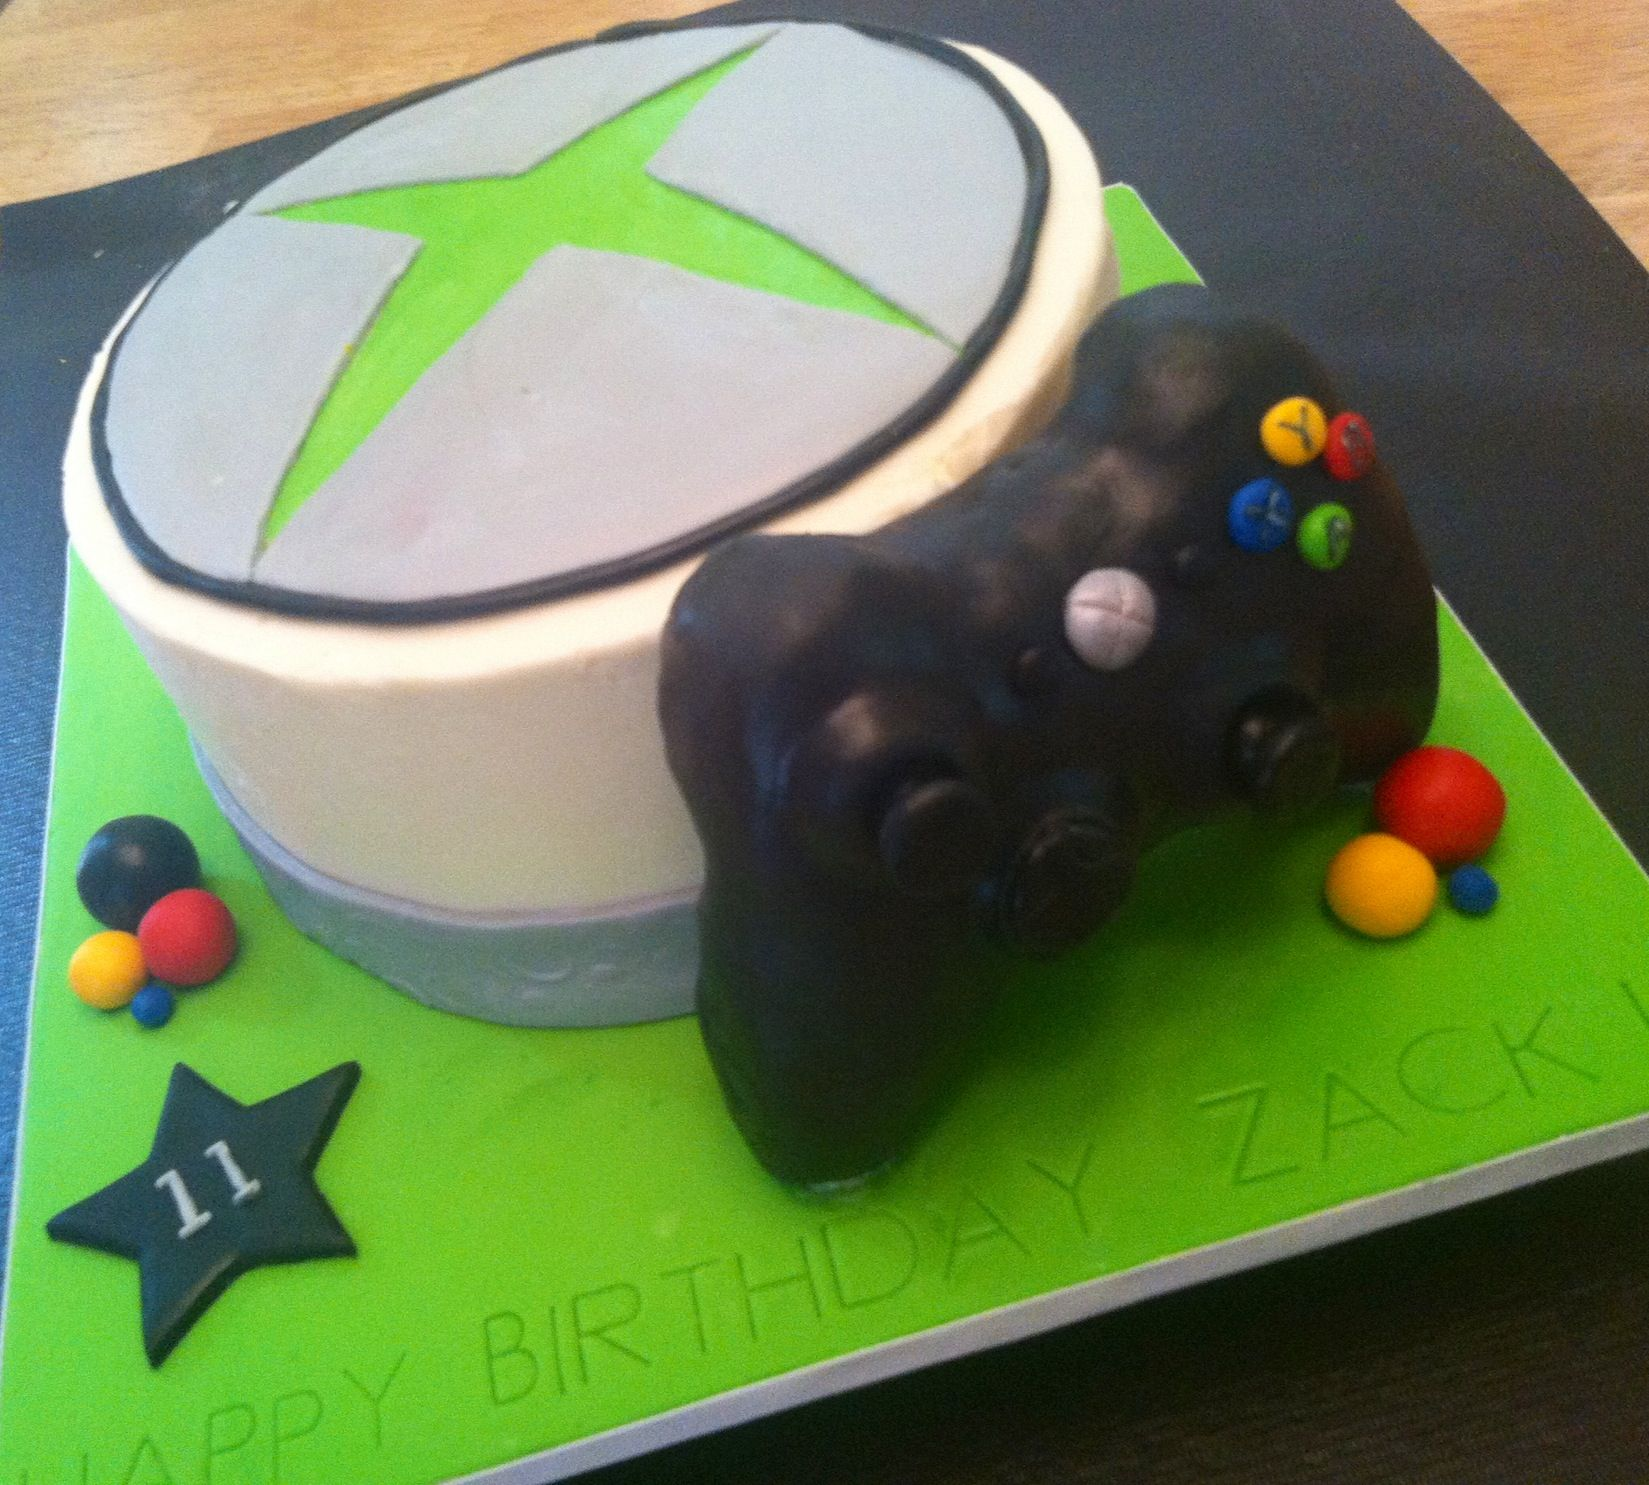 Xbox birthday cake recipe